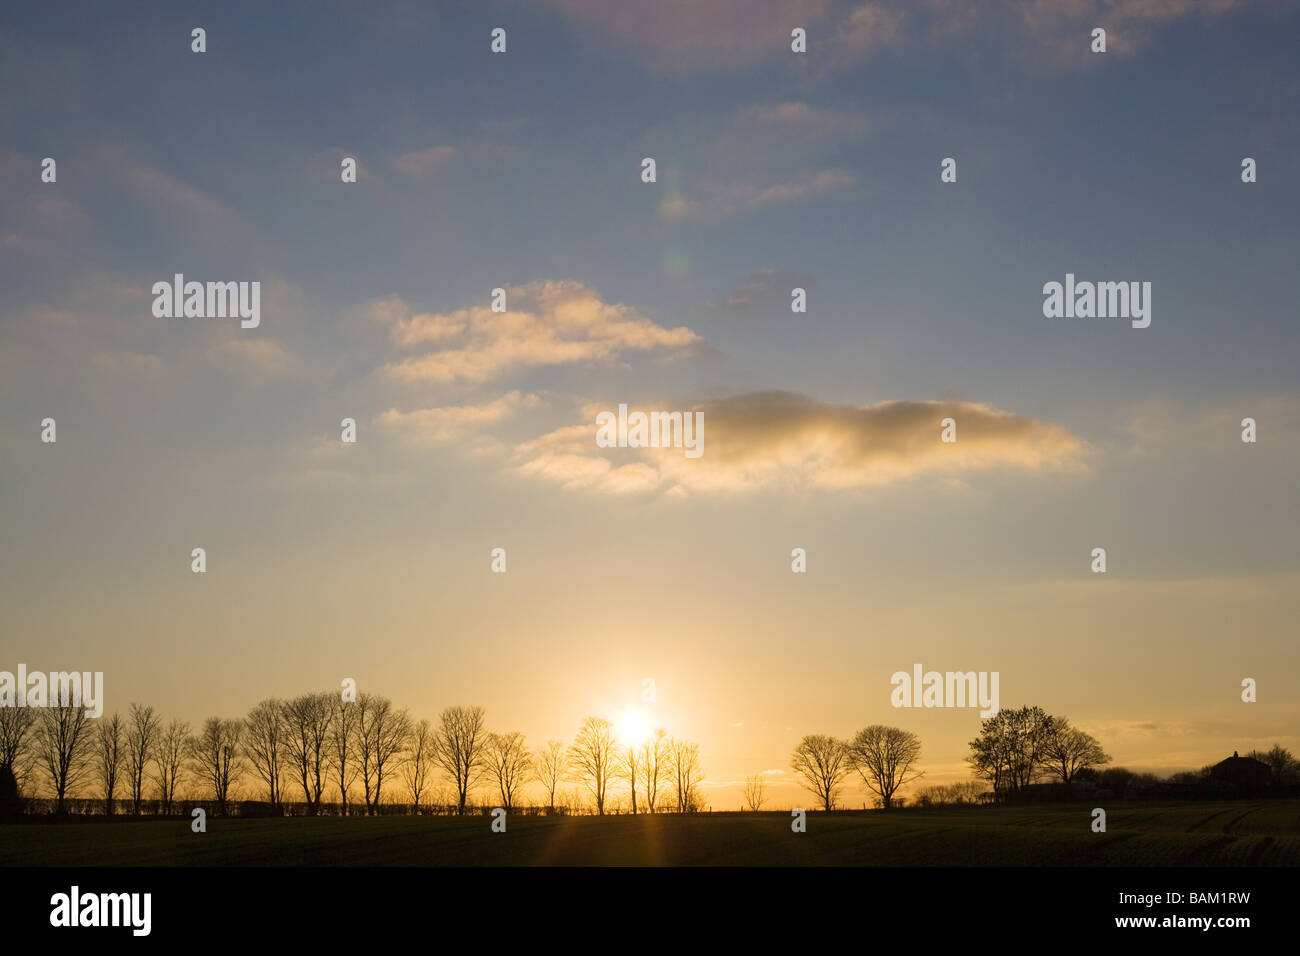 Silhouetted trees - Stock Image